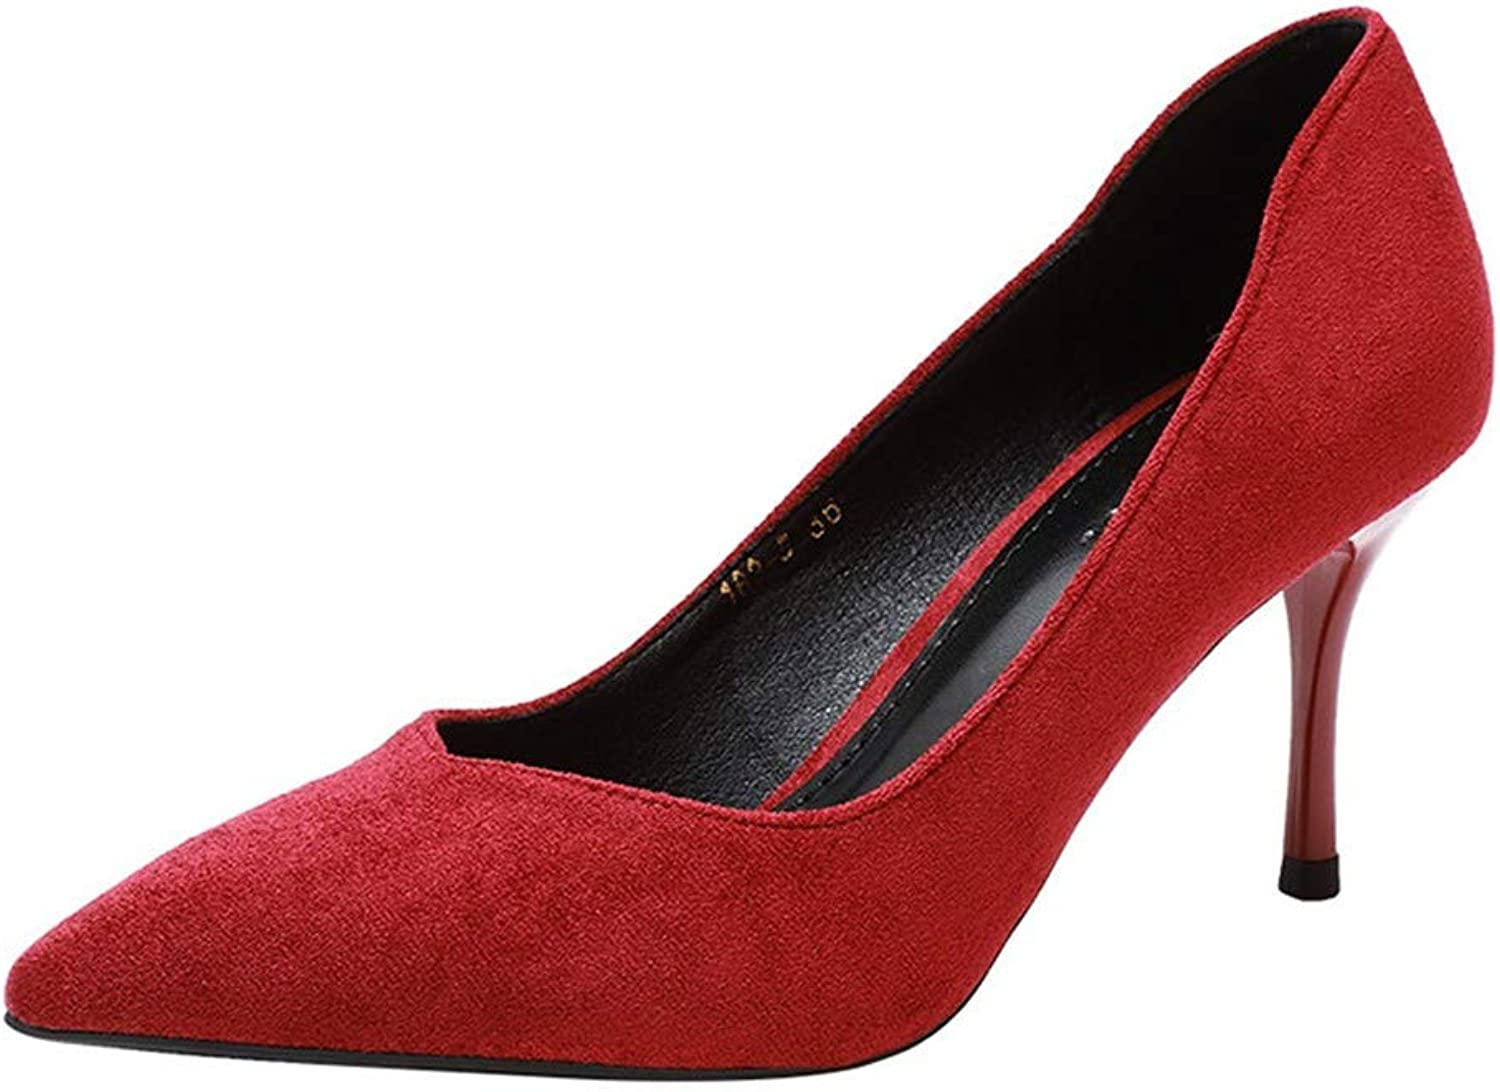 Top Shishang Red Work Pointed high Heels Female Stiletto Shallow Mouth shoes